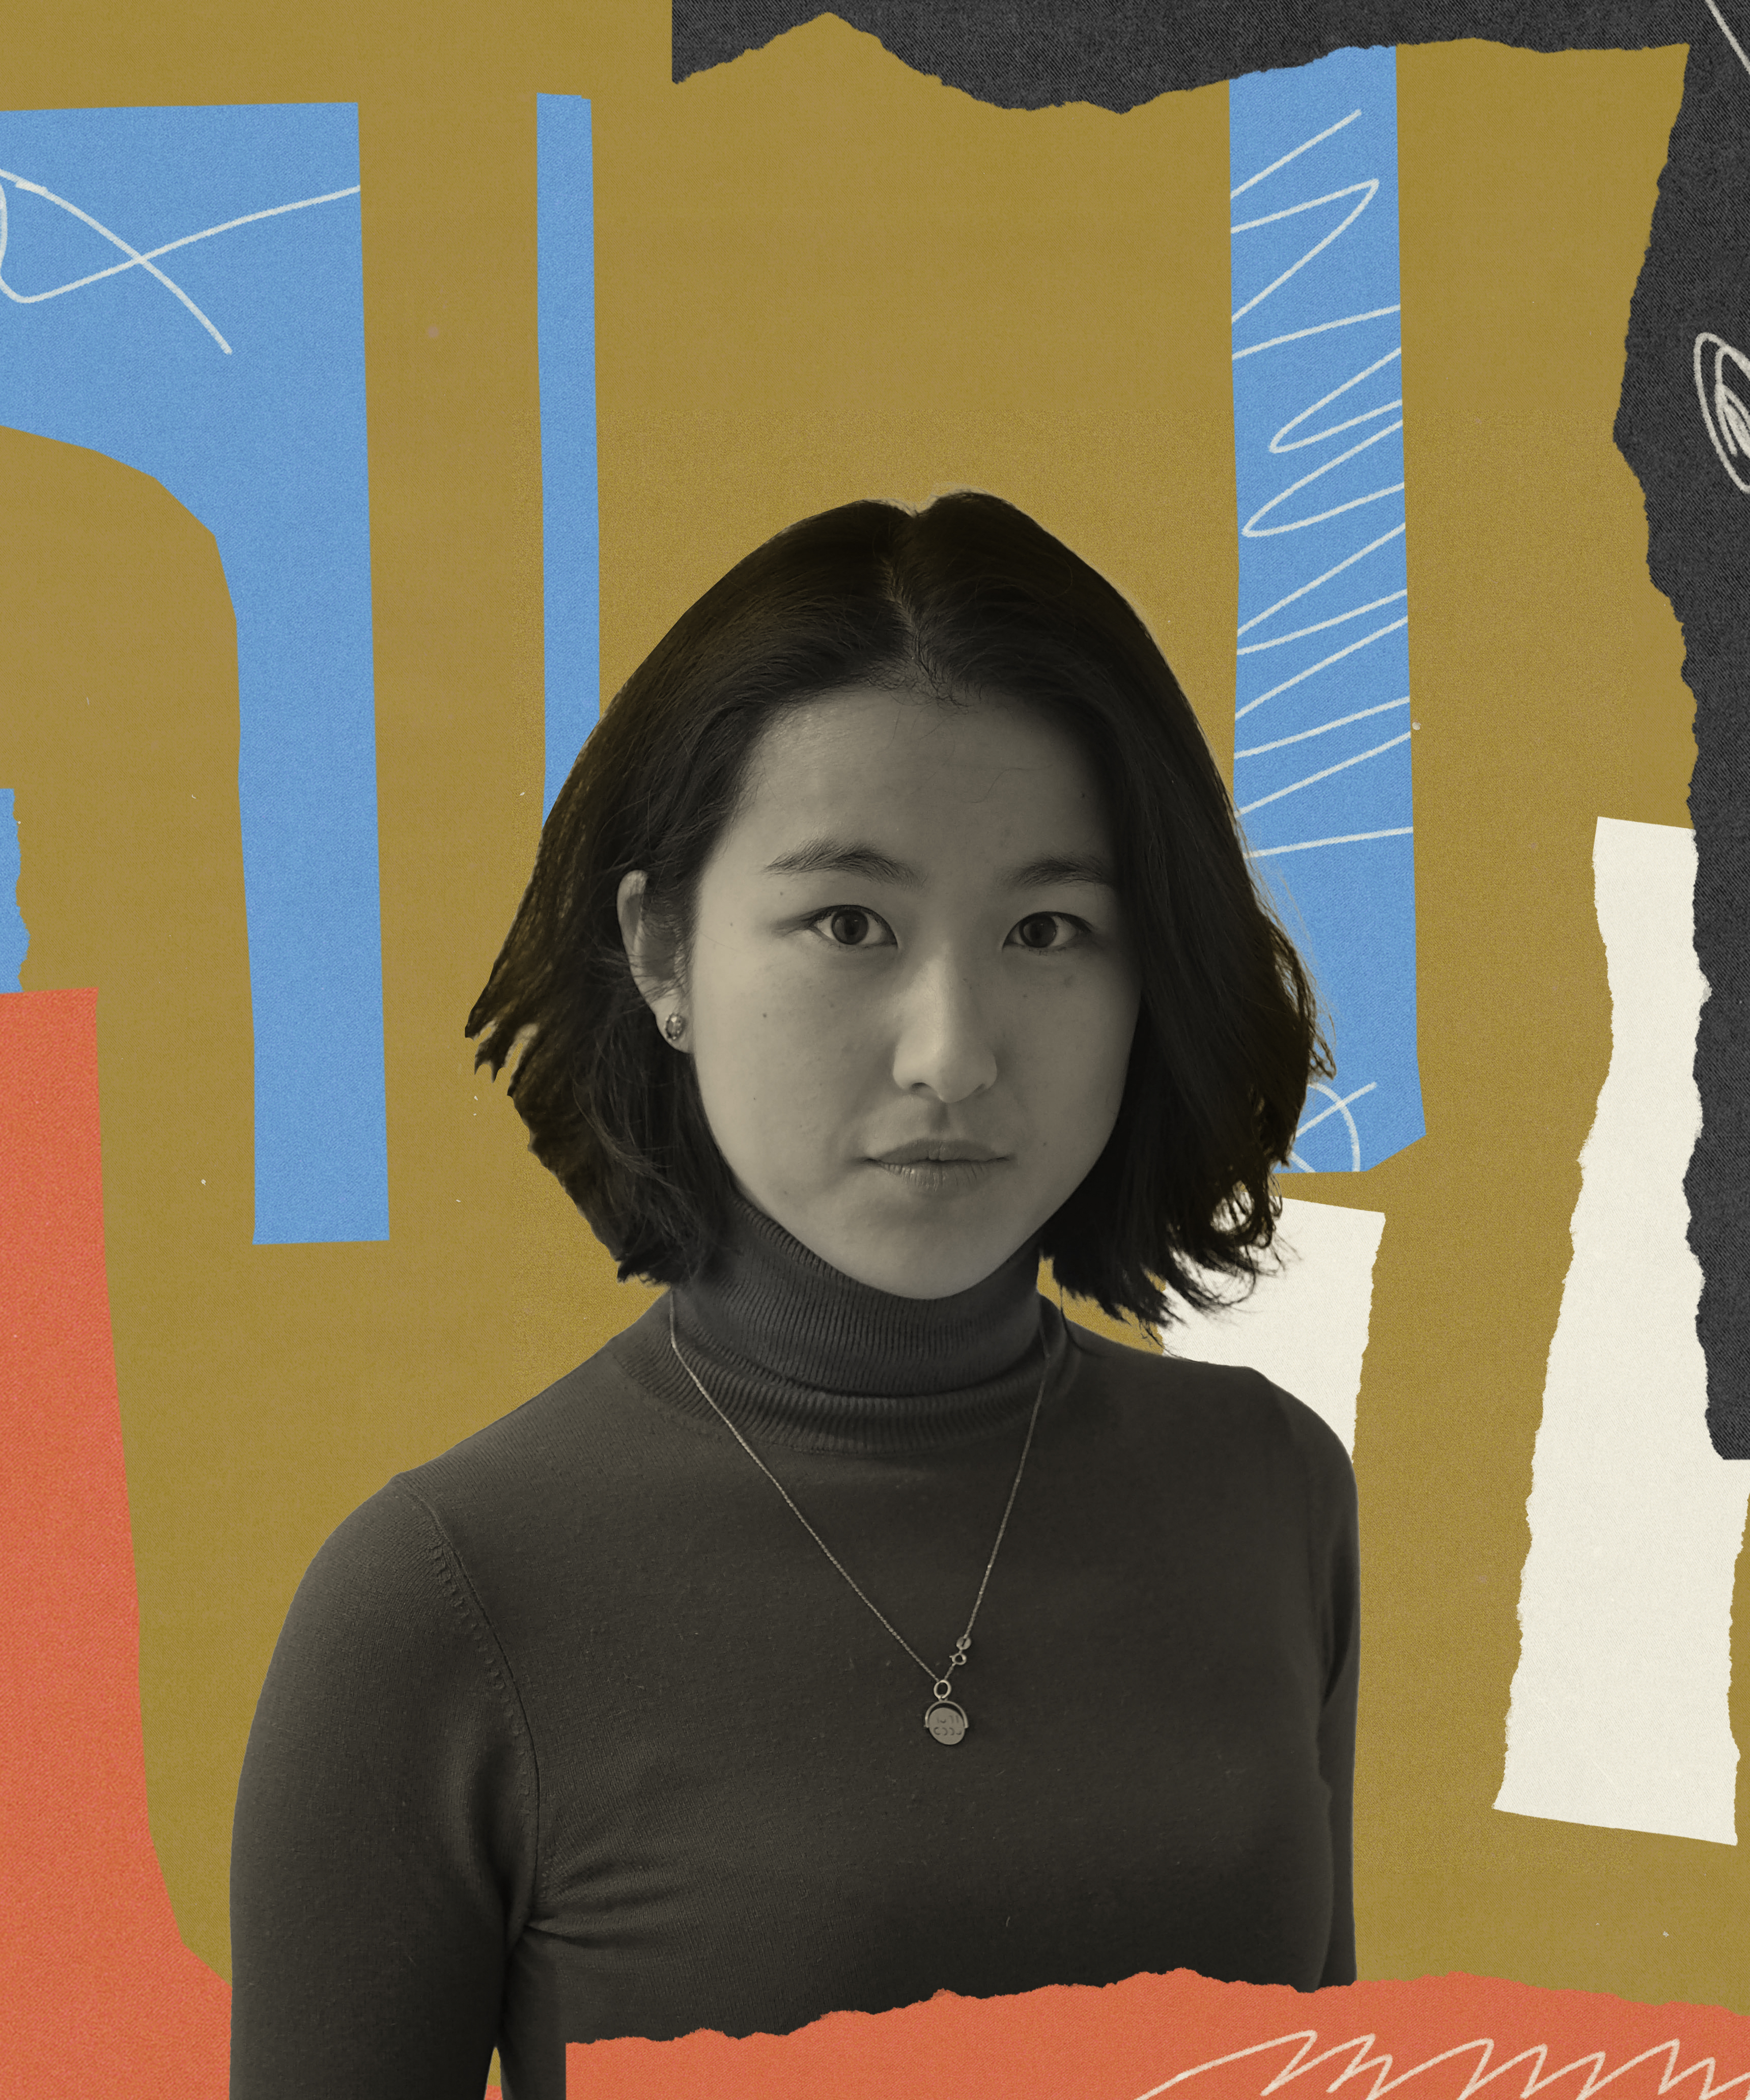 Abstract photo illustration of Cindy Yu